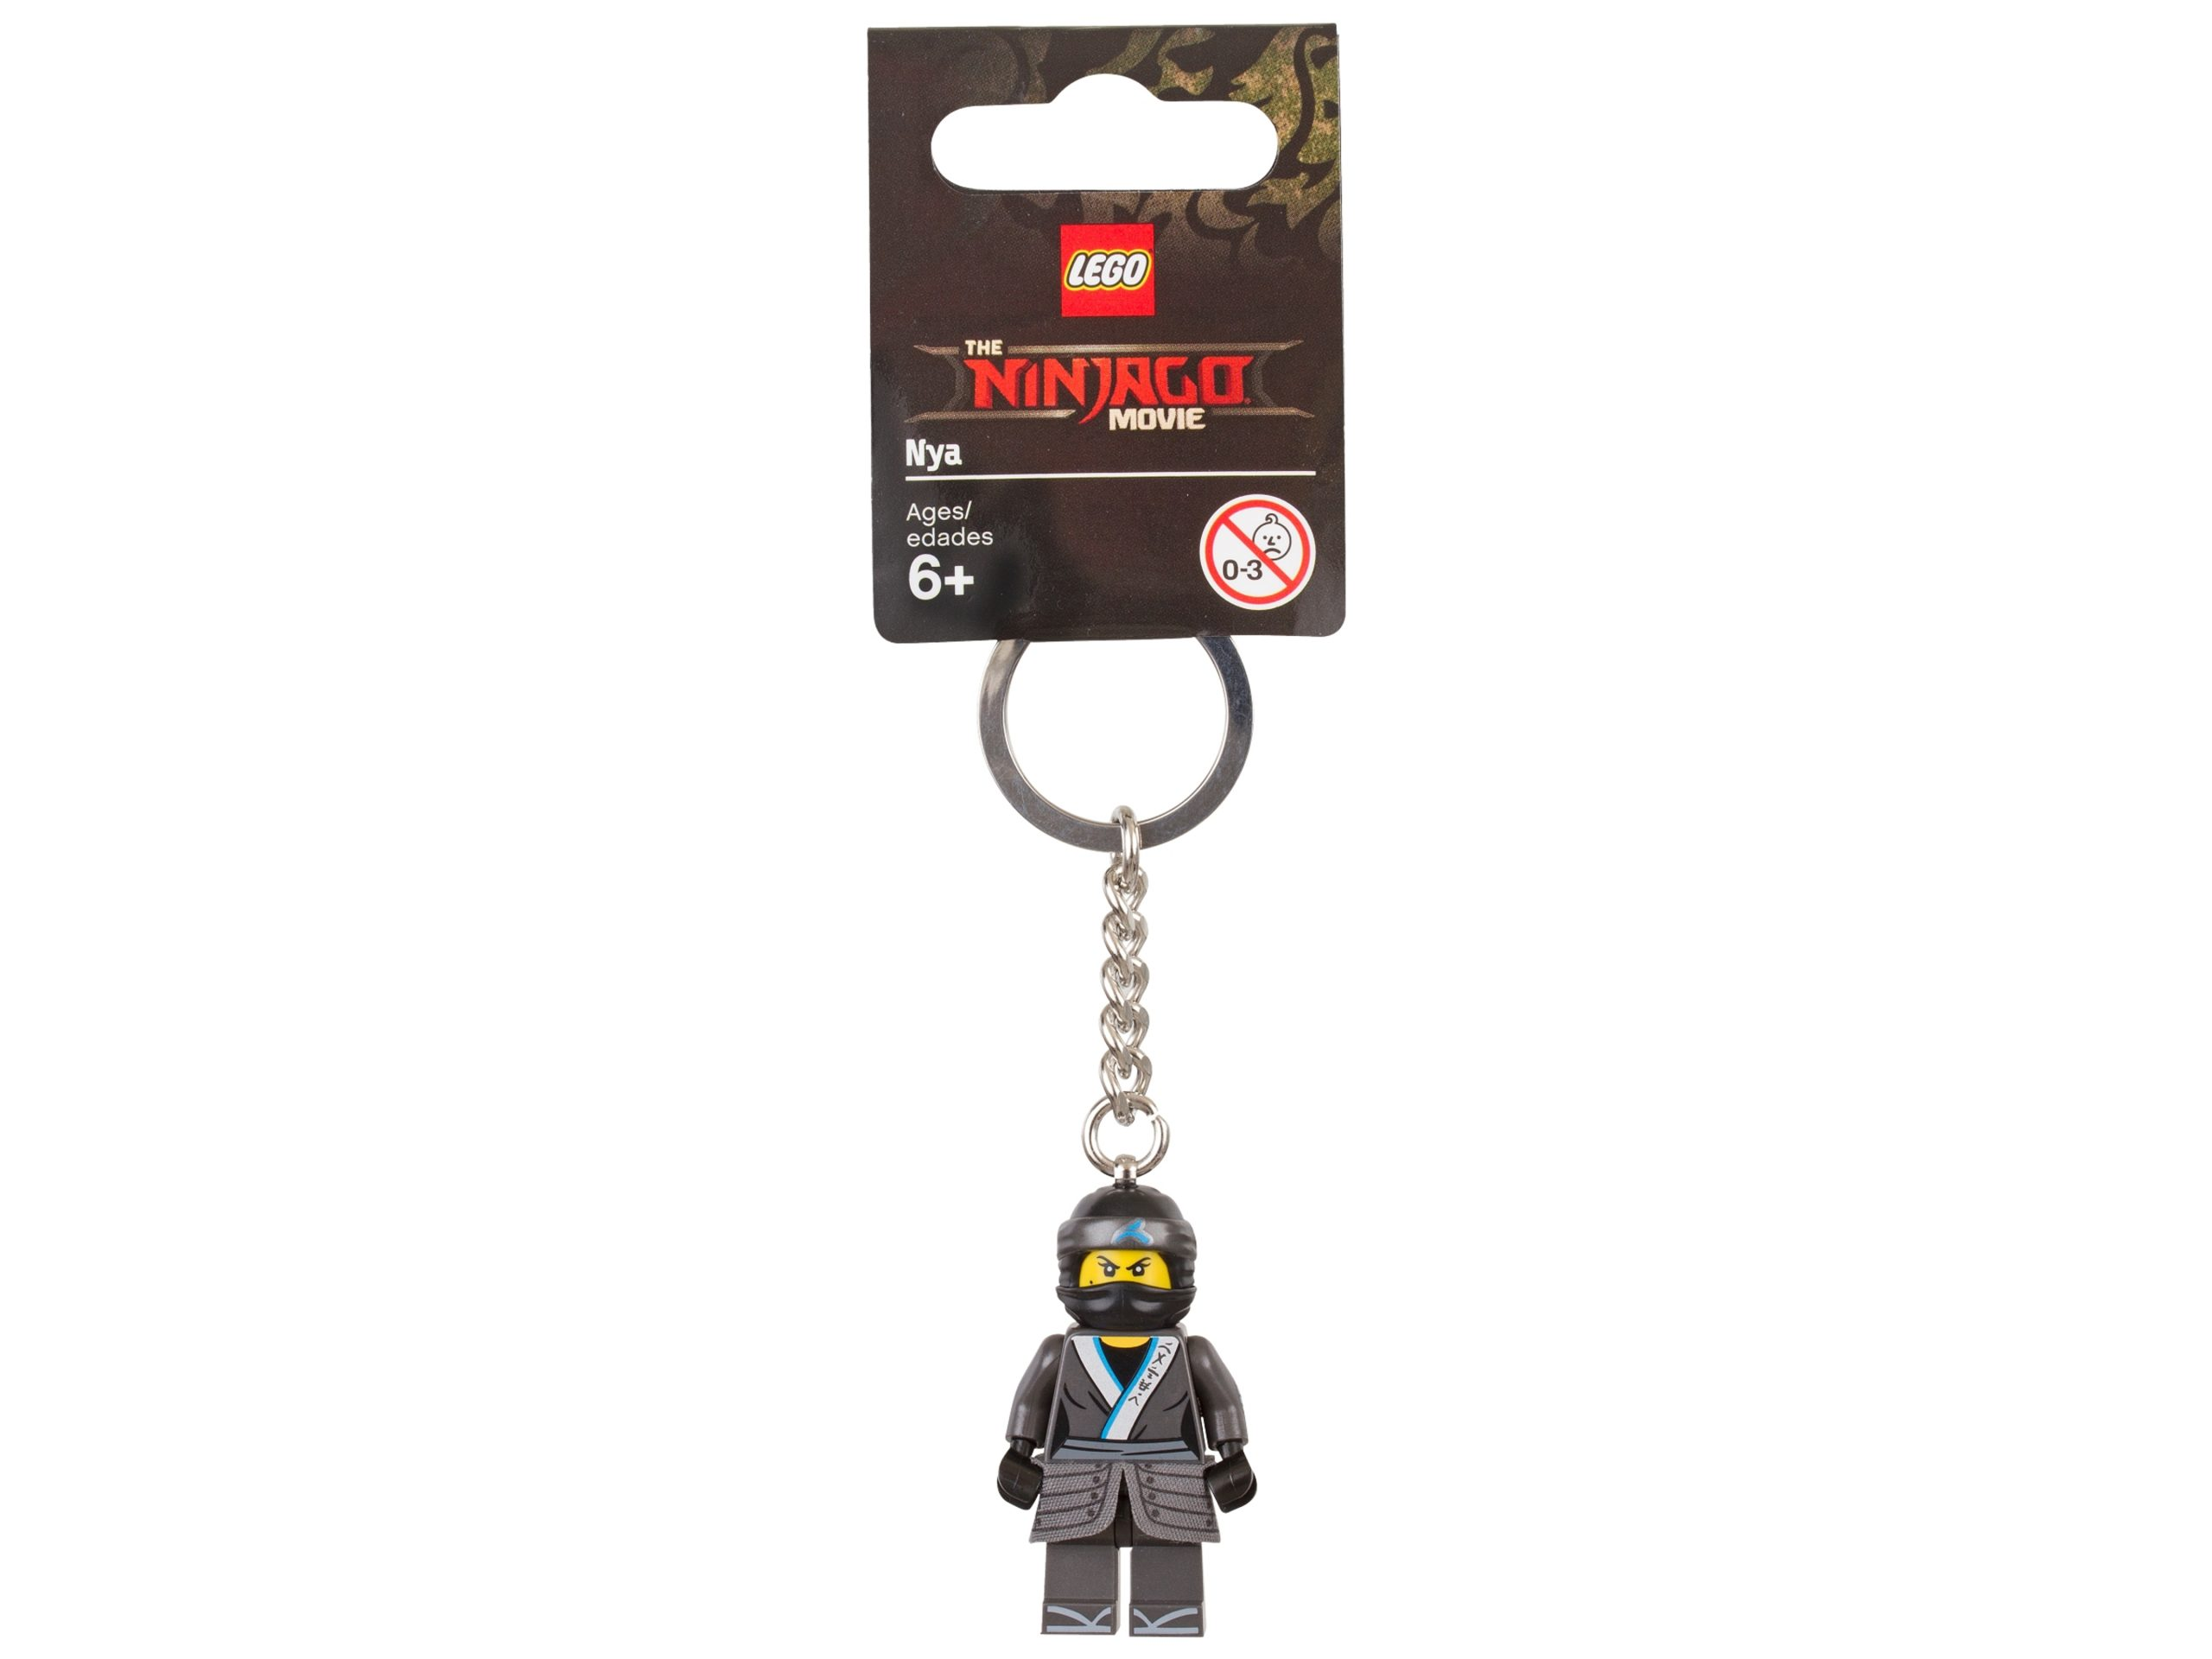 lego 853699 ninjago movie nya key chain scaled